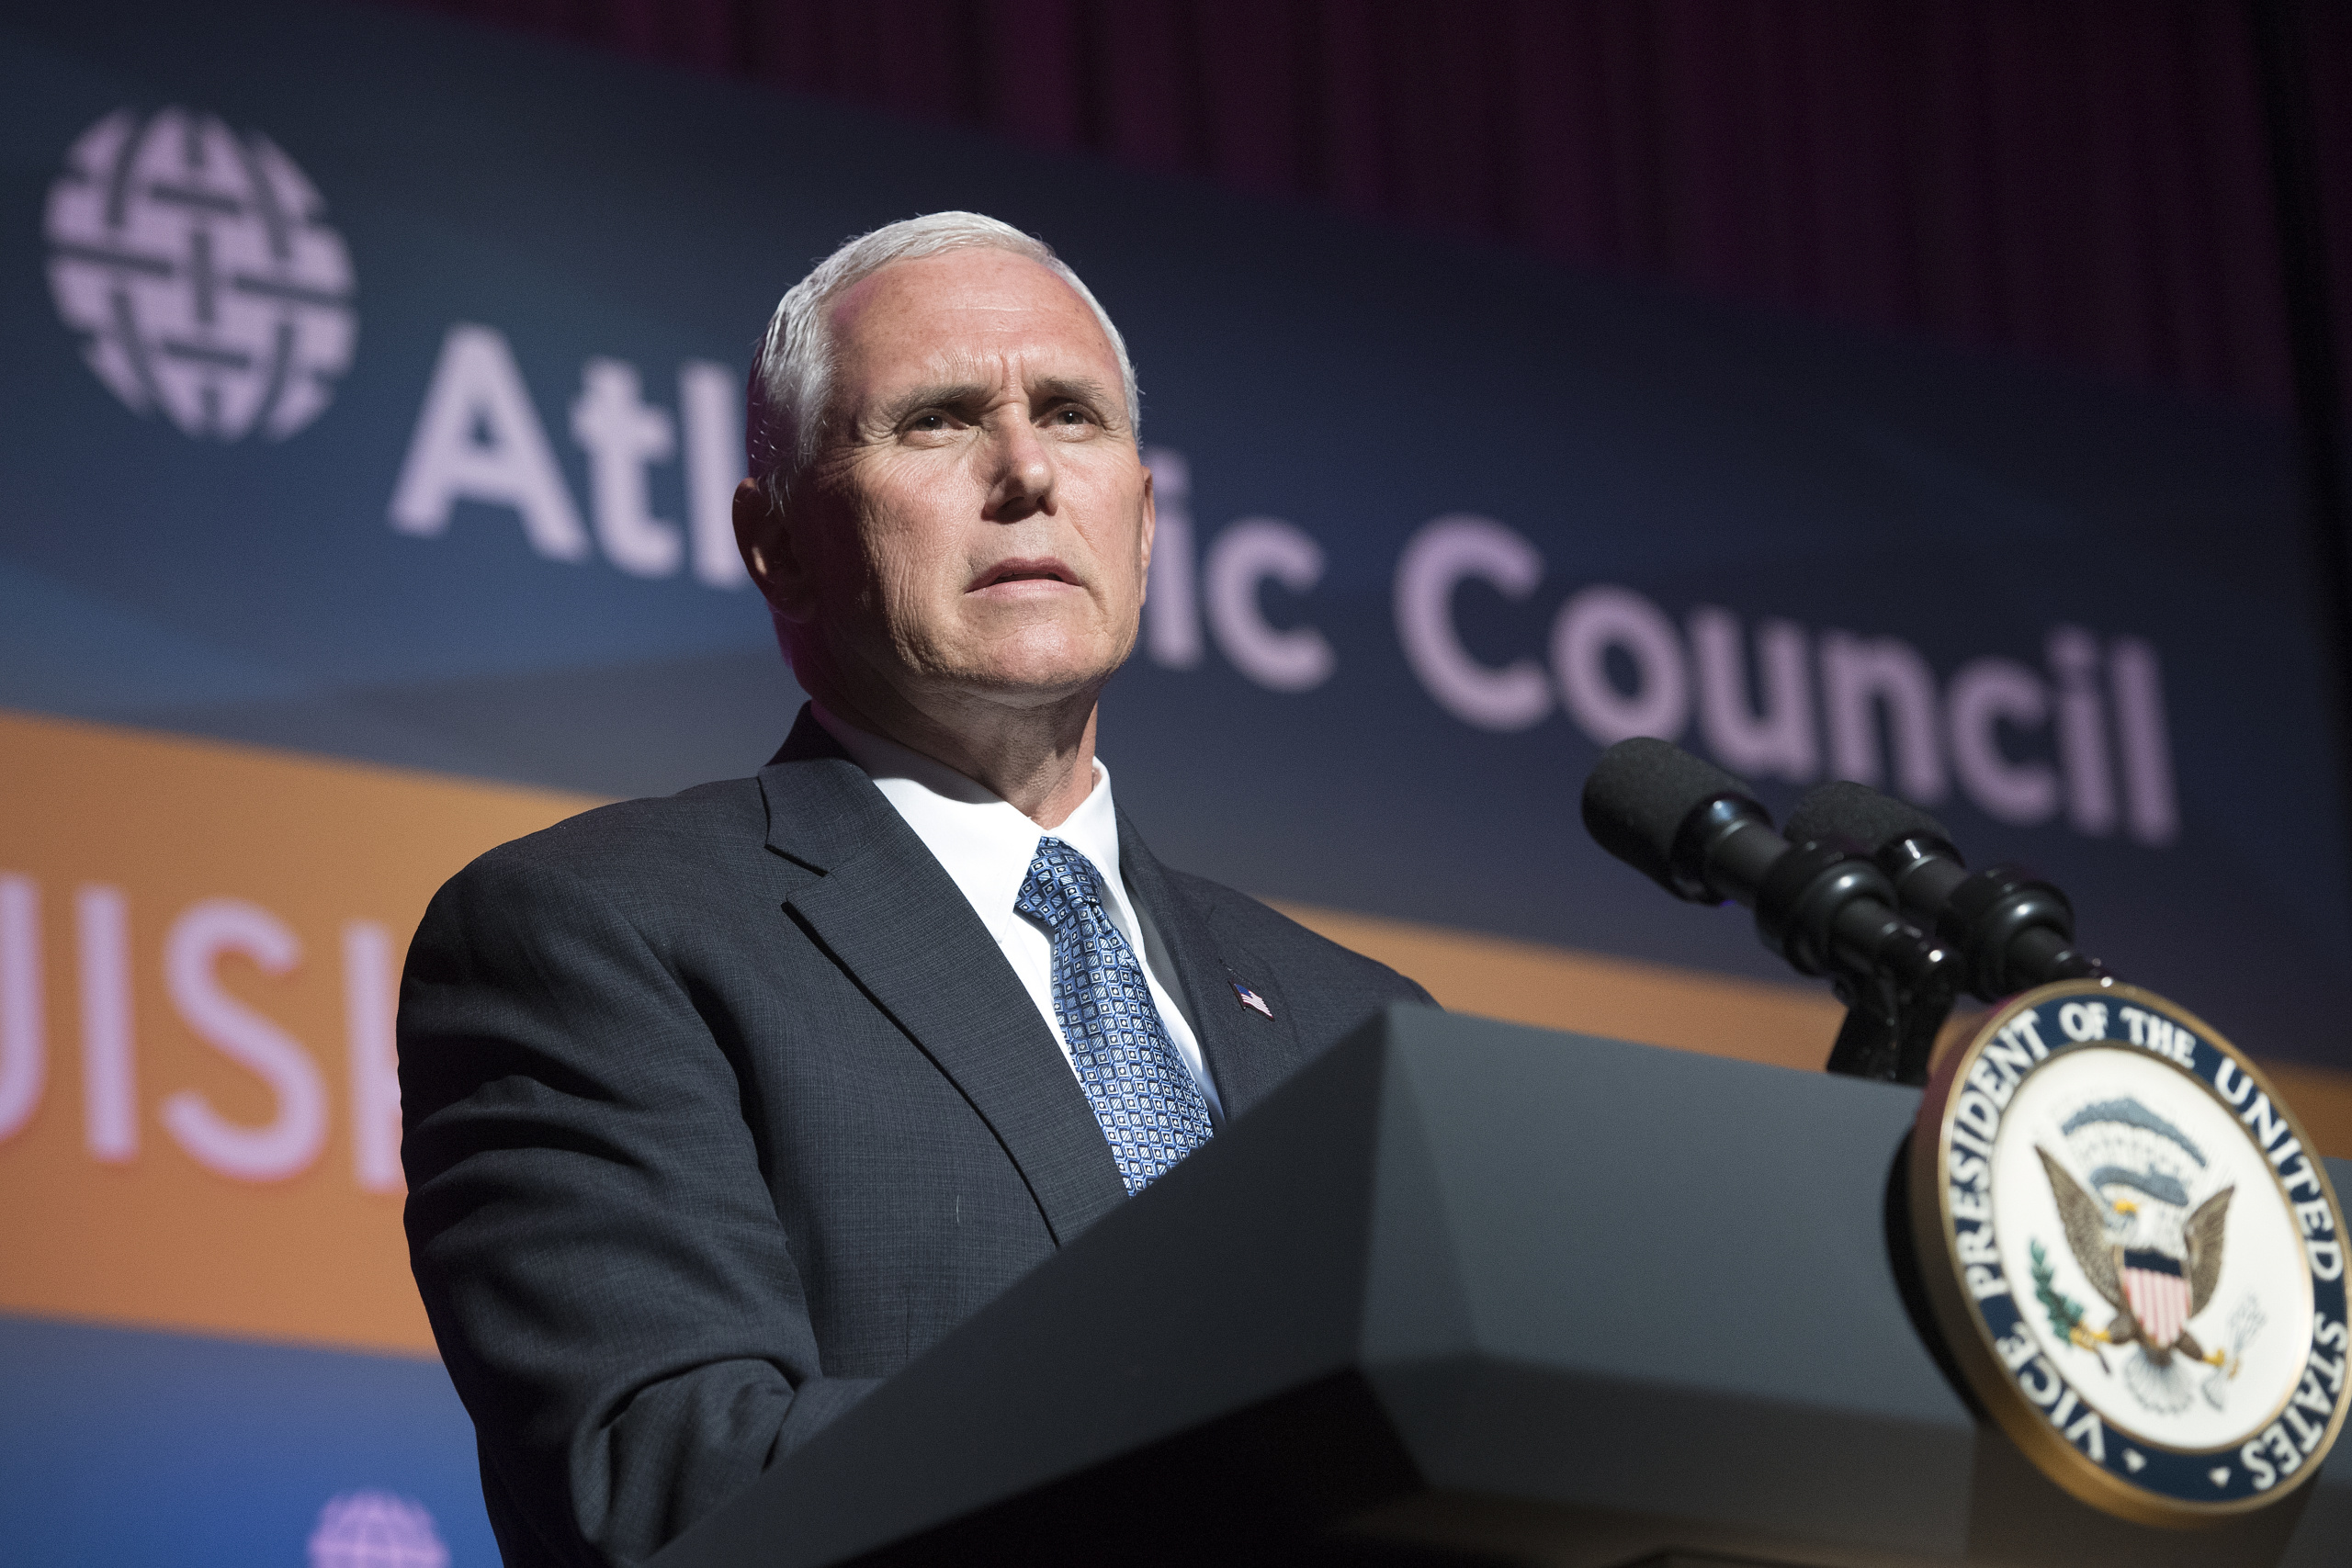 Vice President of the United States of America, is pictured during his speech at the Atlantic Council 2017.